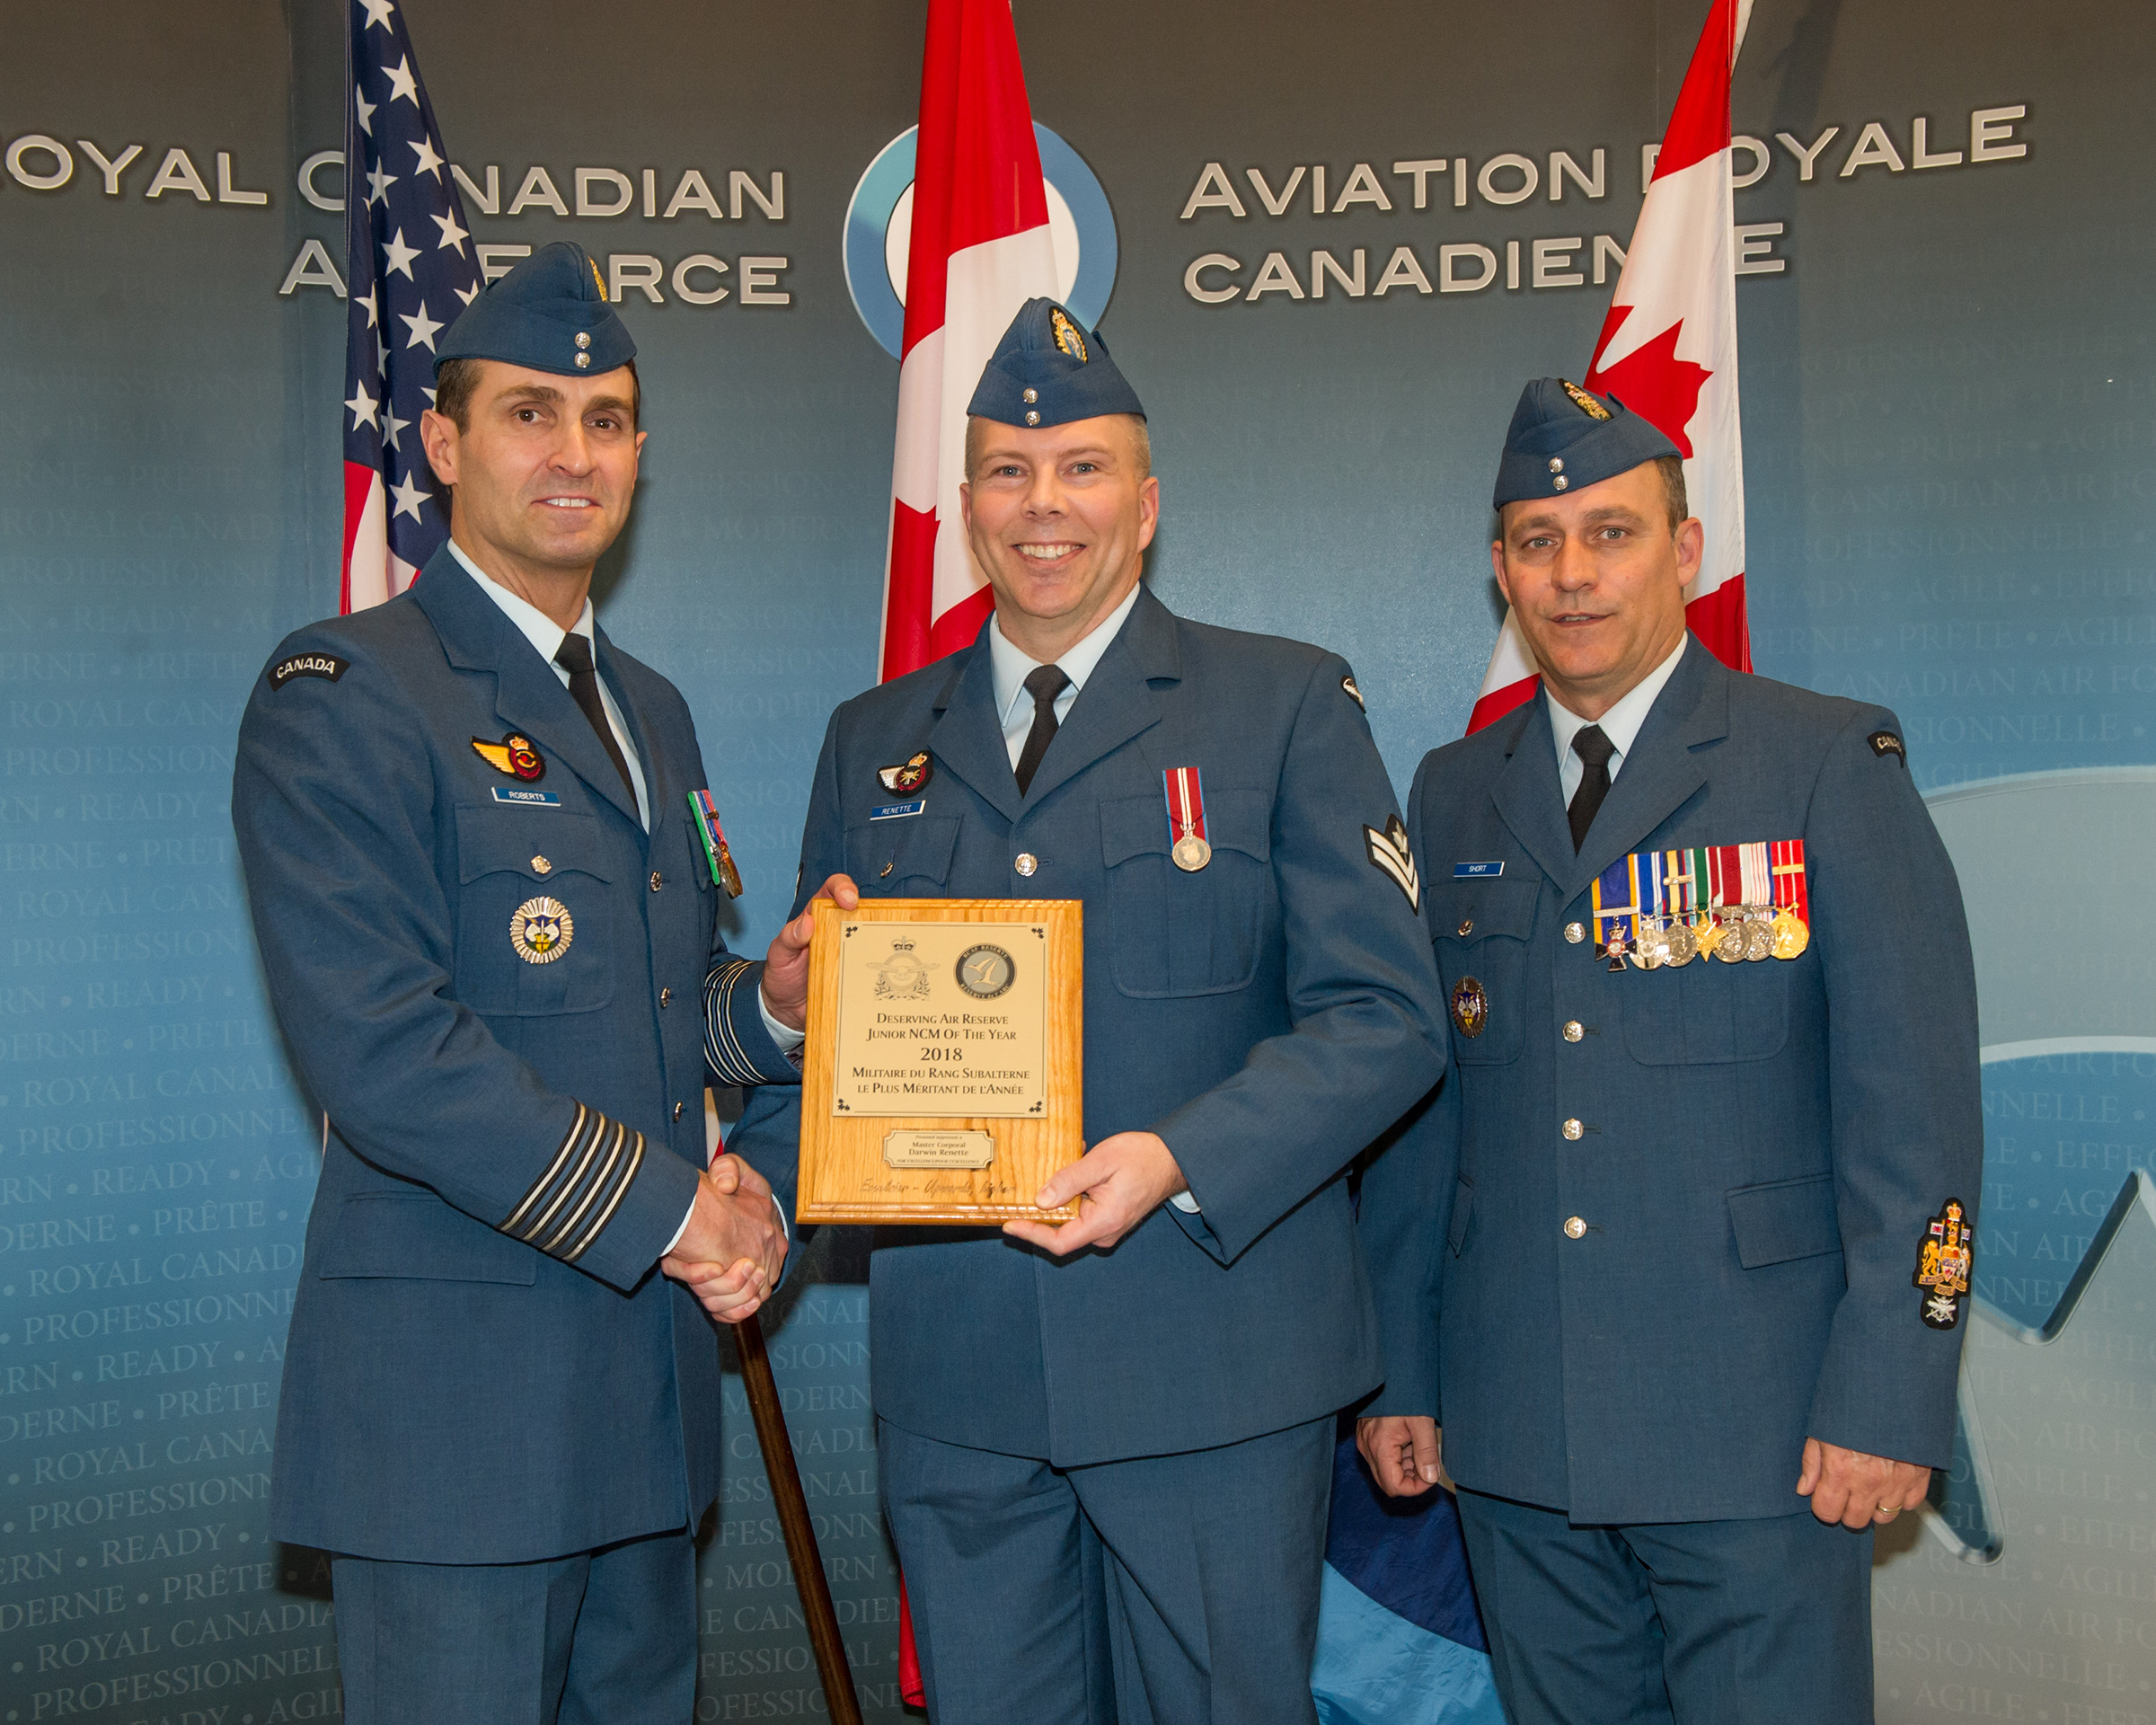 On February 27, 2019, Colonel Mark Roberts (left), commander of 22 Wing, and Chief Warrant Officer John Short (right), 22 Wing chief warrant officer, presented Master Corporal Darwin Renette with the 2018 Air Reserve Deserving Junior Non-Commissioned Member of the Year award. PHOTO: Private Julianna Bullfrog-Wabanonik